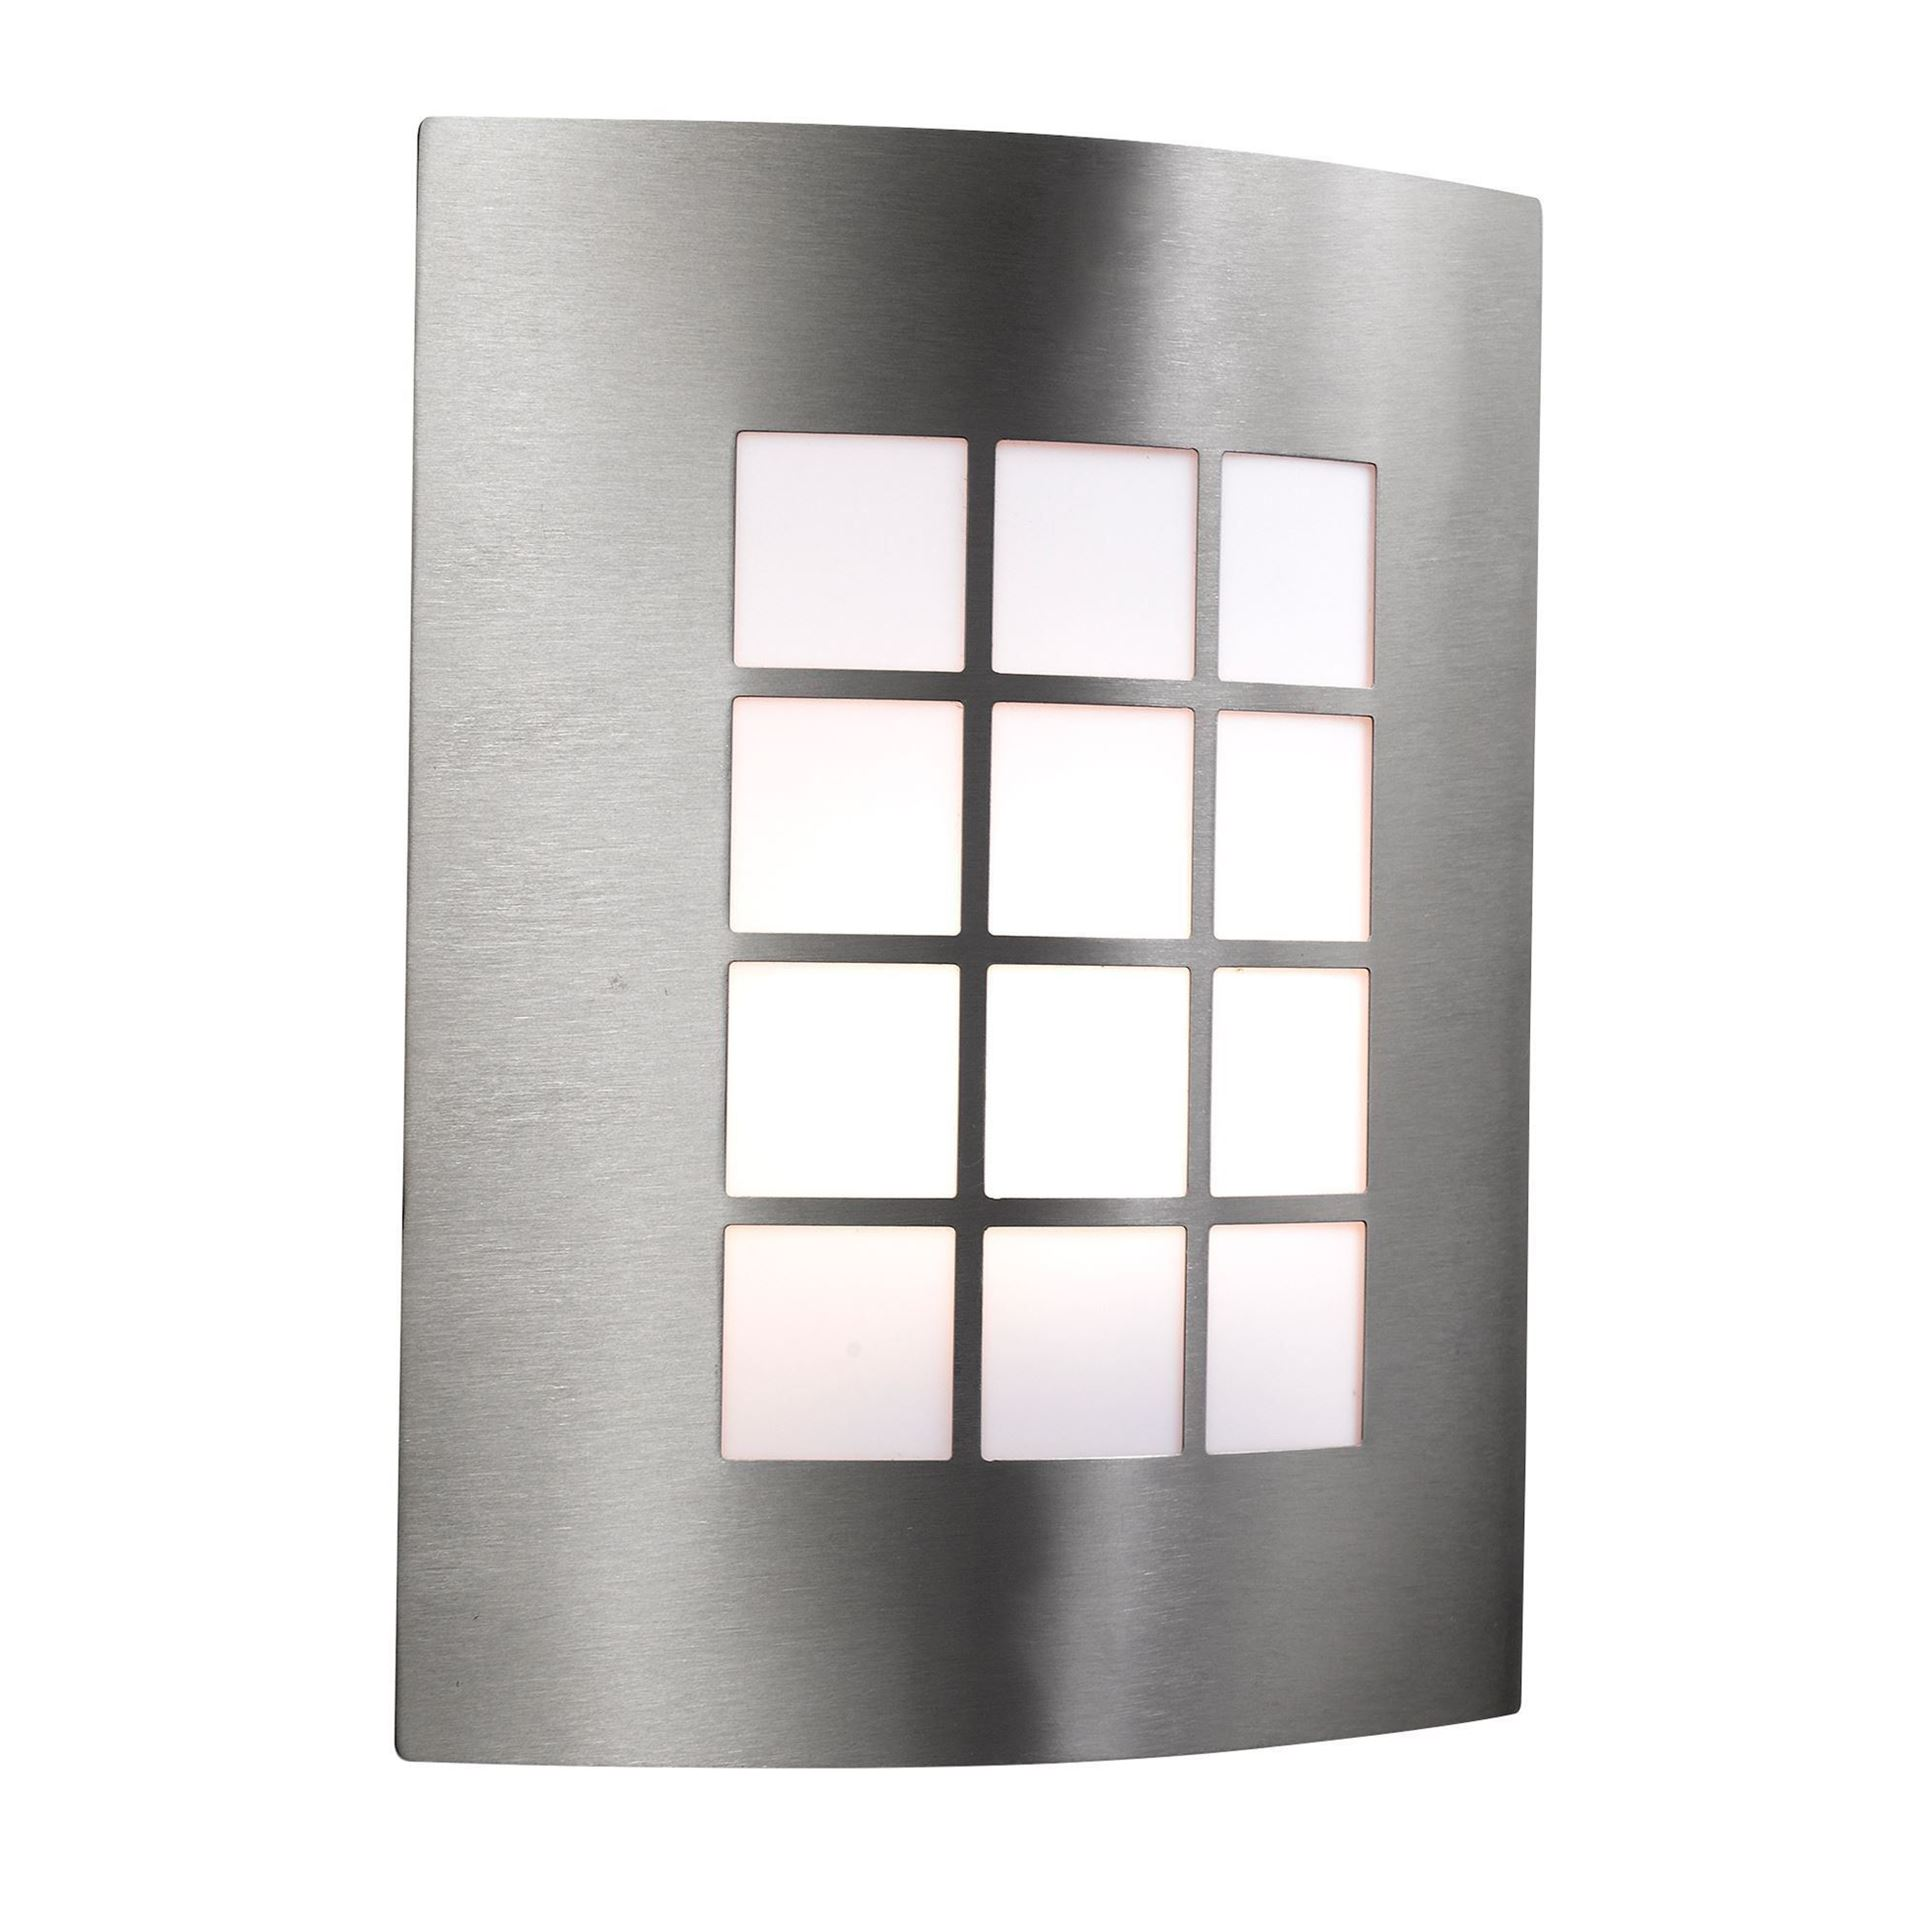 STAINLESS STEEL IP44 OUTDOOR WALL LIGHT WITH SQUARE OPAL POLYCARBONATE DIFFUSER 3140SS